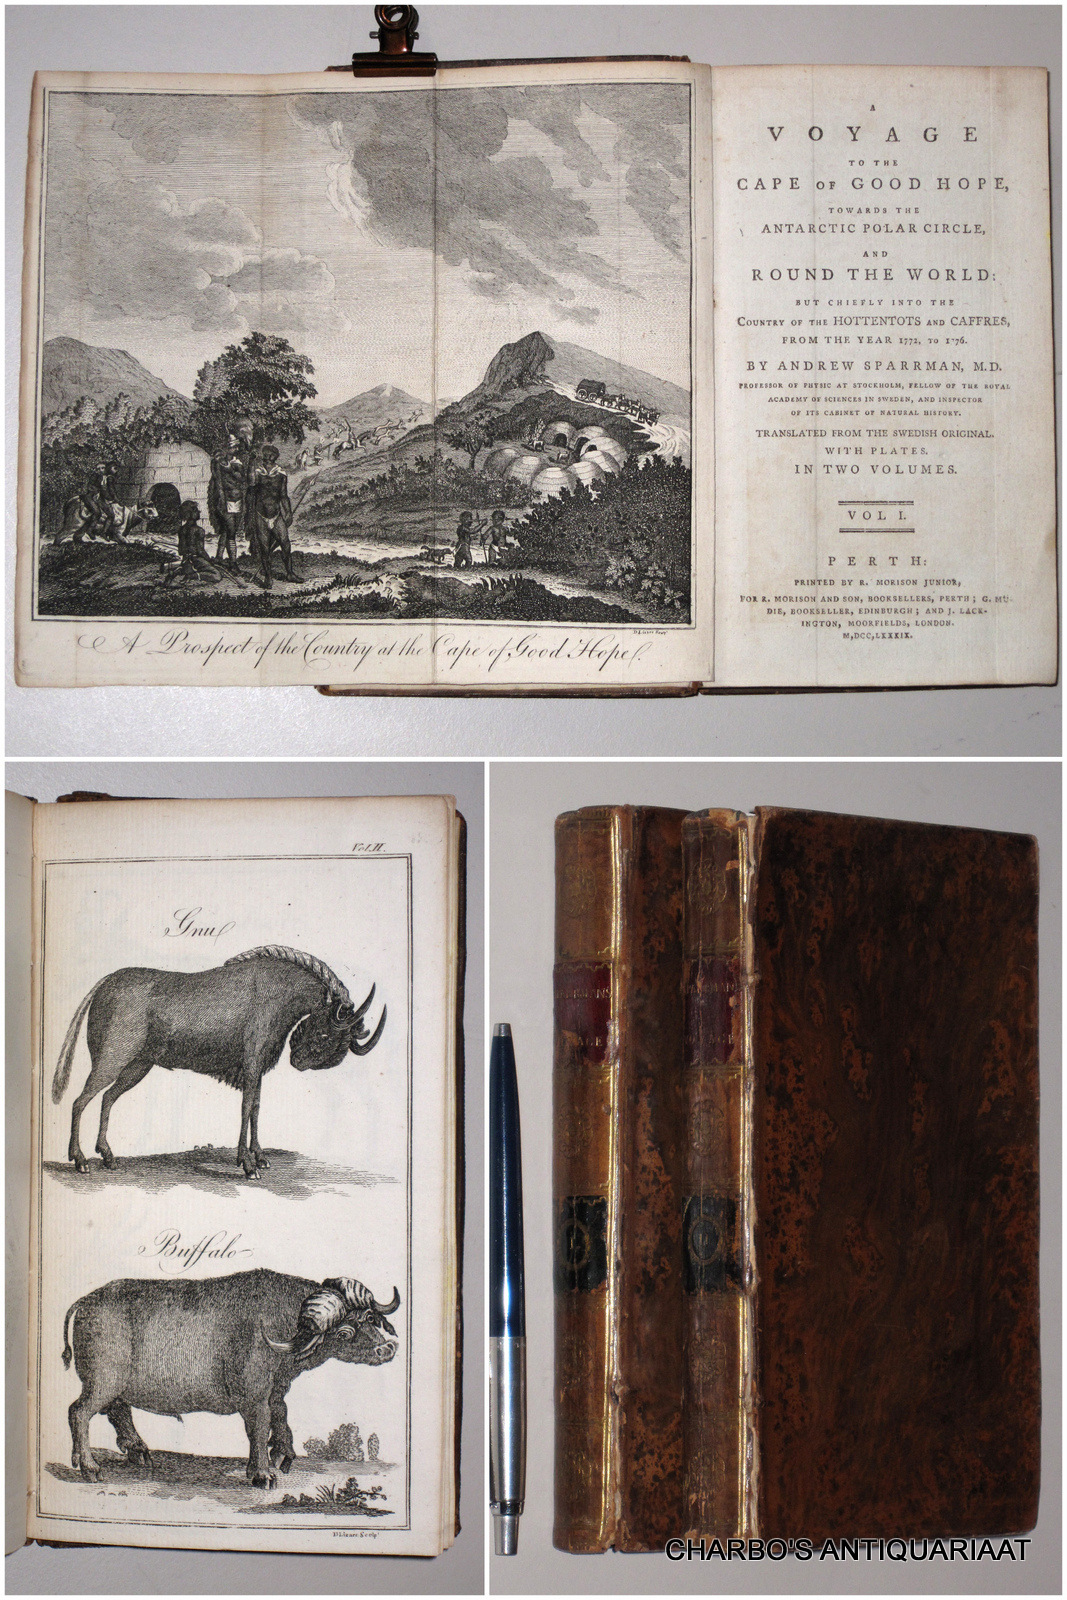 SPARRMAN,ANDREW, -  A voyage to the Cape of Good Hope, towards the Antarctic Polar Circle, and around the world., but chiefly into the country of the Hottentots and Caffres, from the year 1772, to 1776. Translated from the Swedish original.